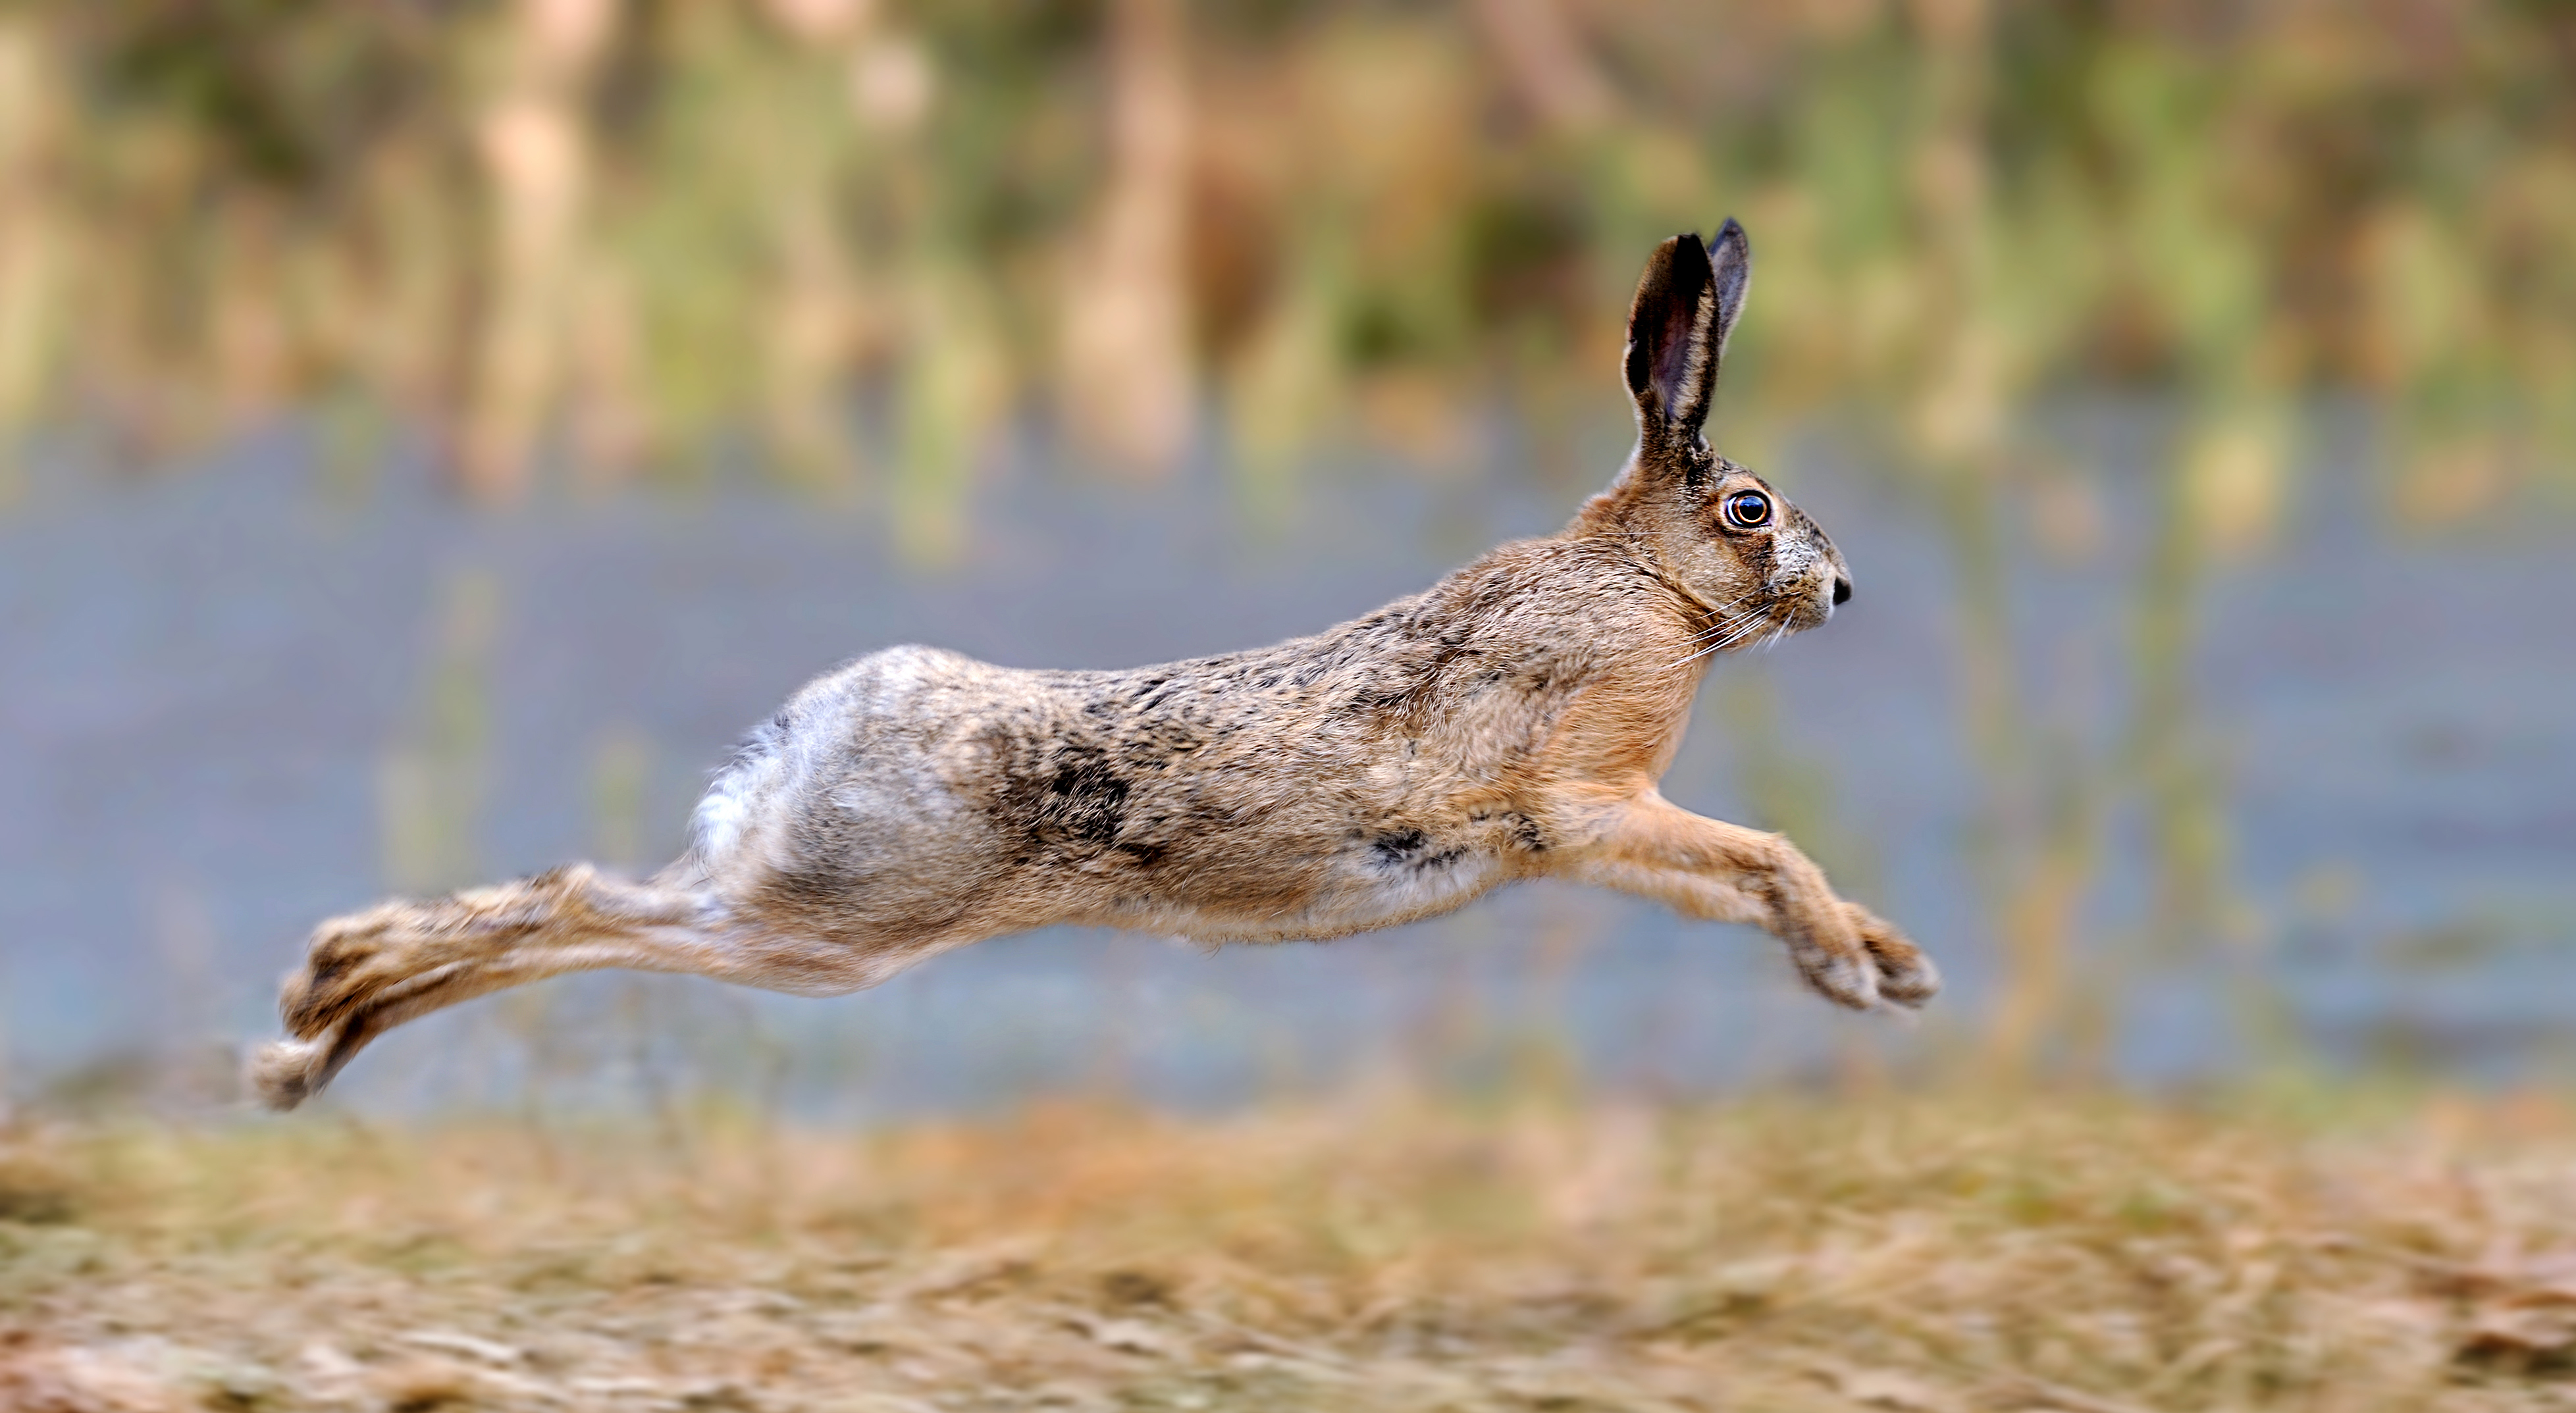 British Ecological Society image of a hare